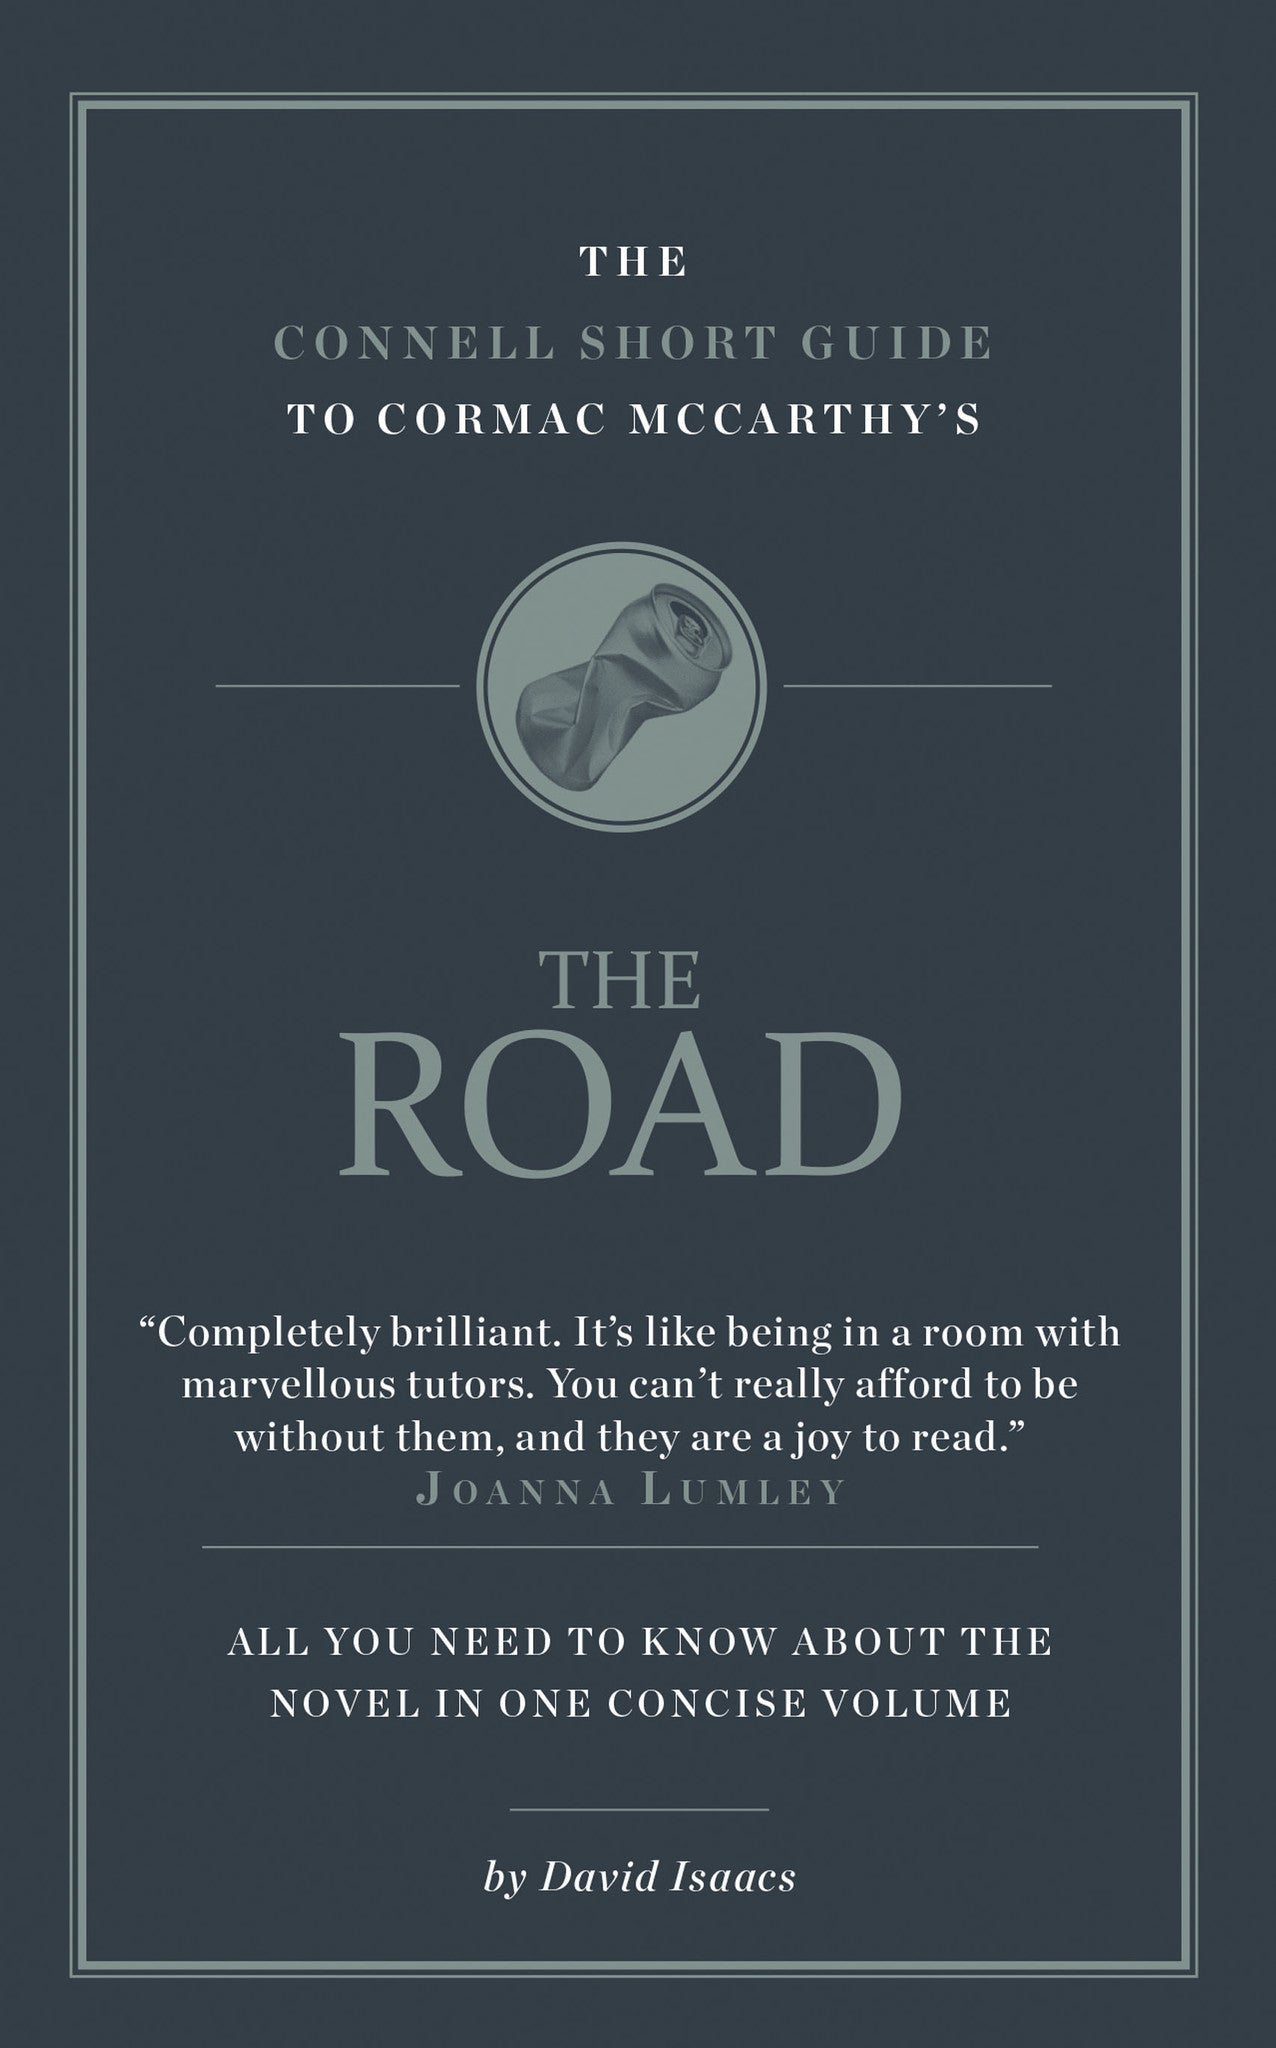 the road cormac mccarhy The road opens after some unknown apocalyptic event has struck the first few pages of the novel situate us in the landscape: ash, isolation, and a long road to travel you could say the novel alternates between two settings: the road and excursions away from the road into houses or other possible food mother lodes.